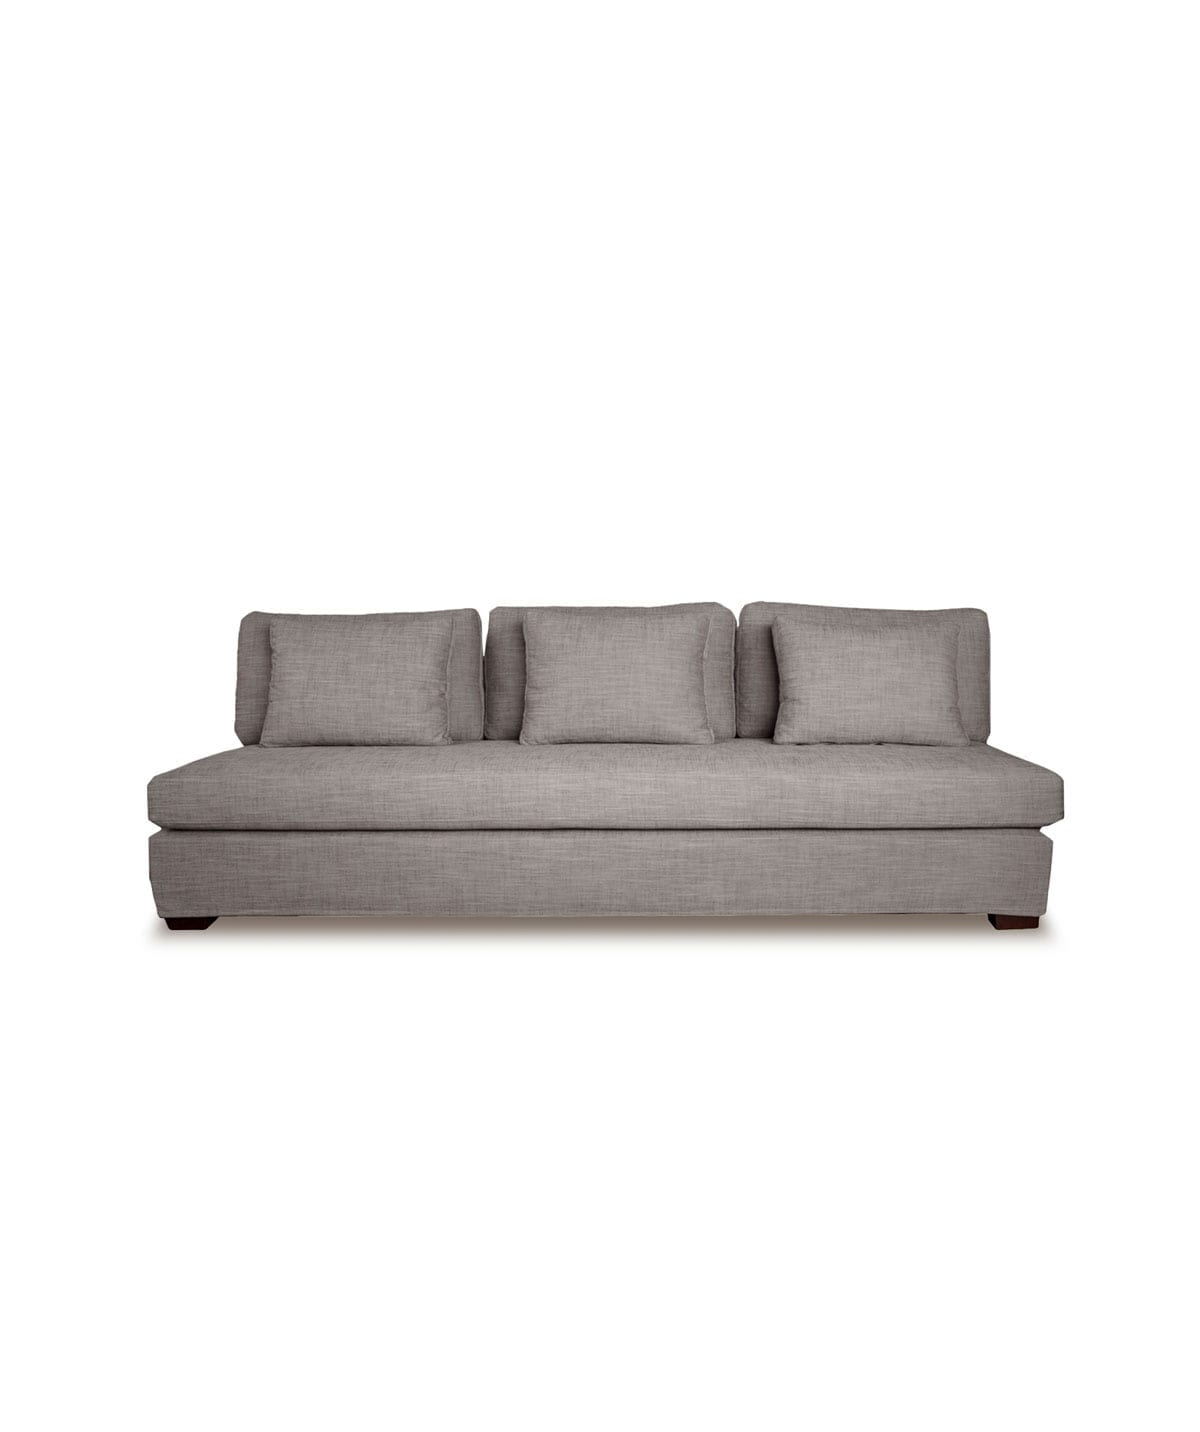 Sofa Lounge Nz Sofas Mckenzie And Willis Part 2